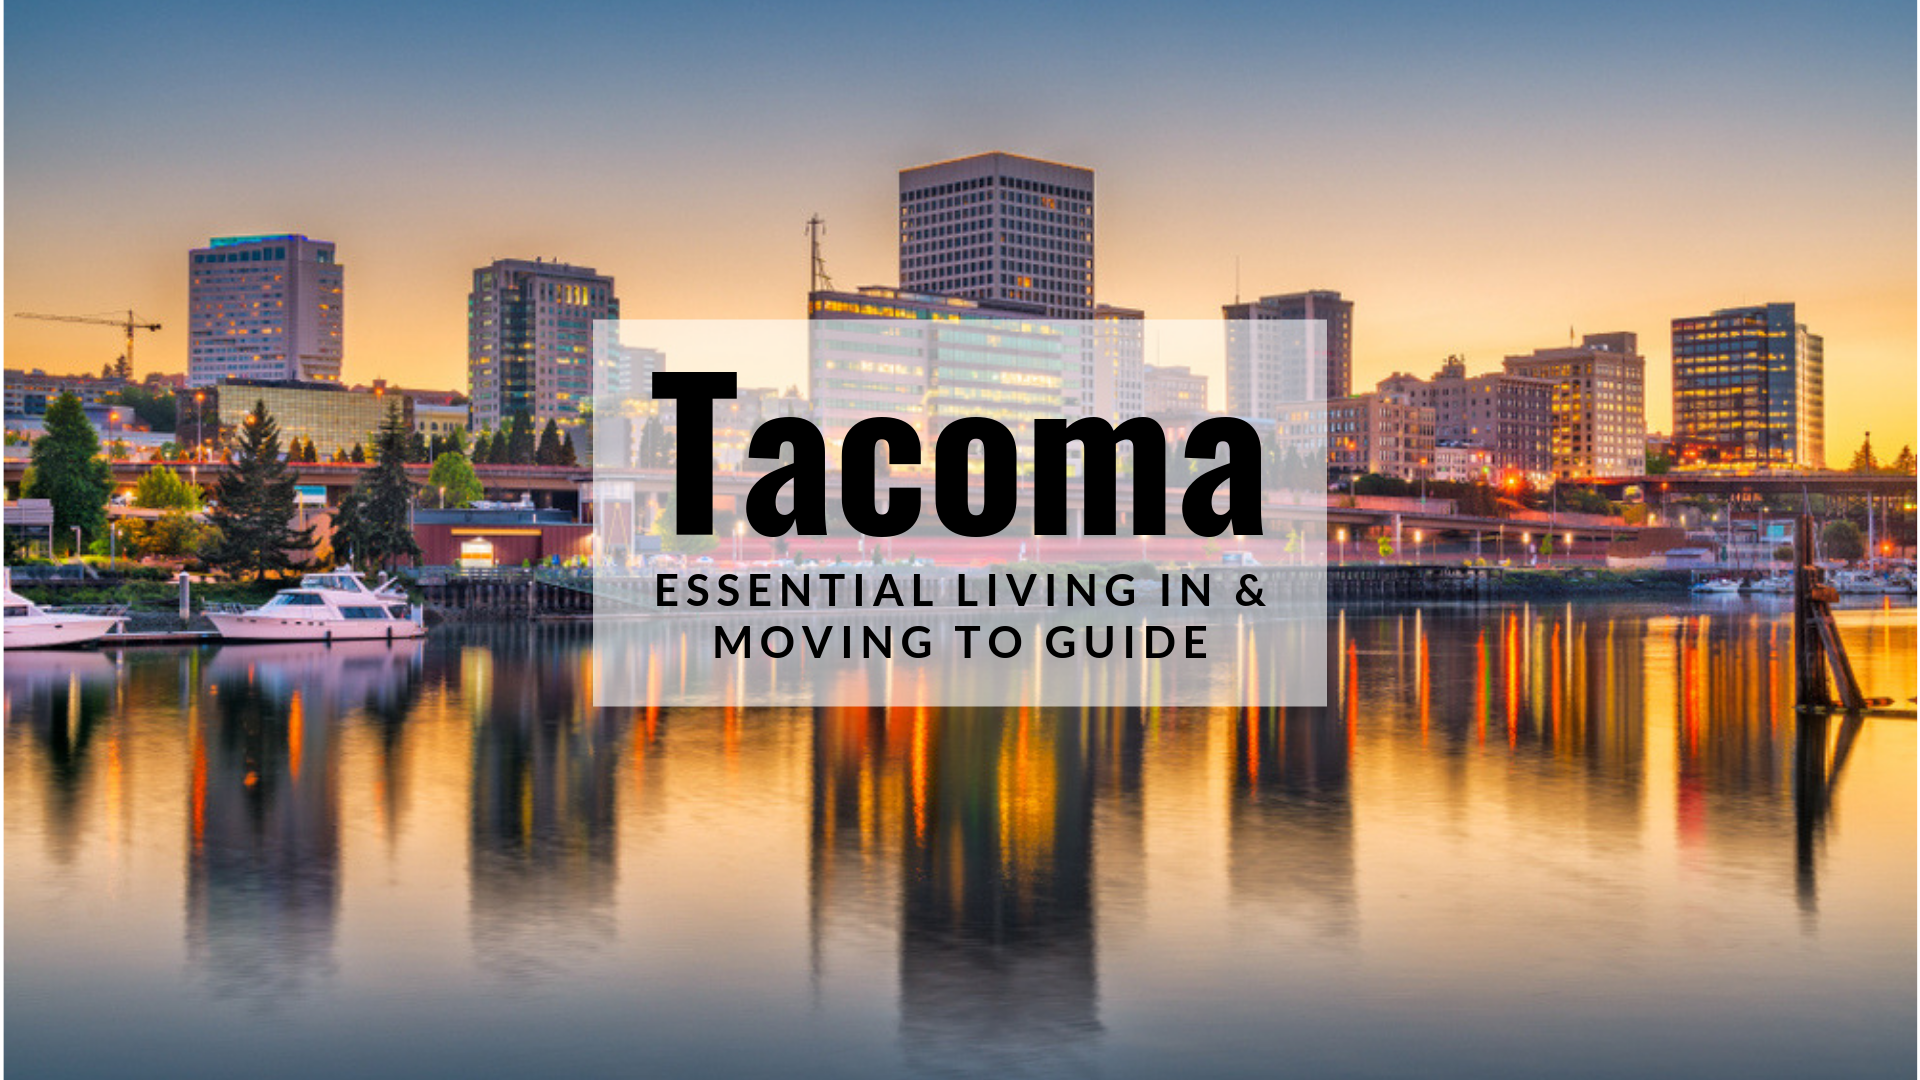 Tacoma, WA - Essential Living In & Moving To Guide